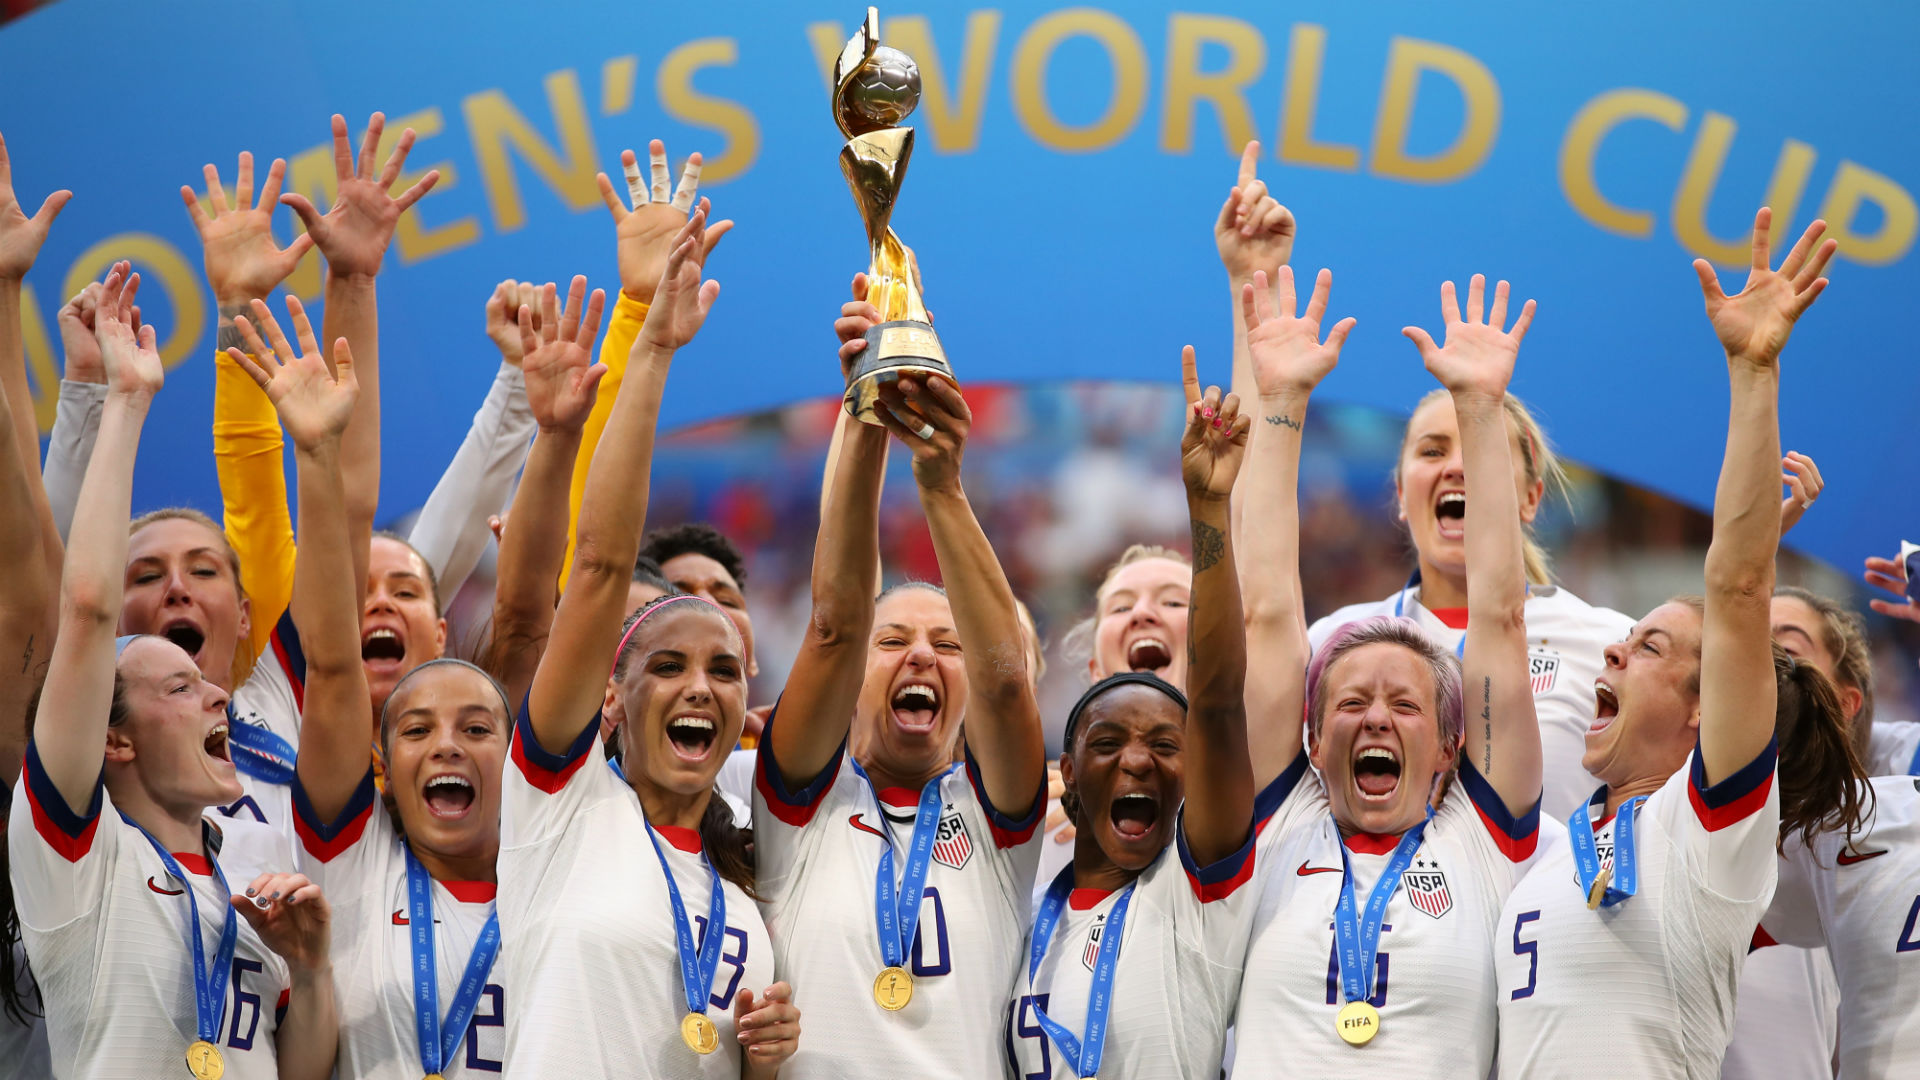 FIFA confirms it will select 2023 Women's World Cup host on June 25